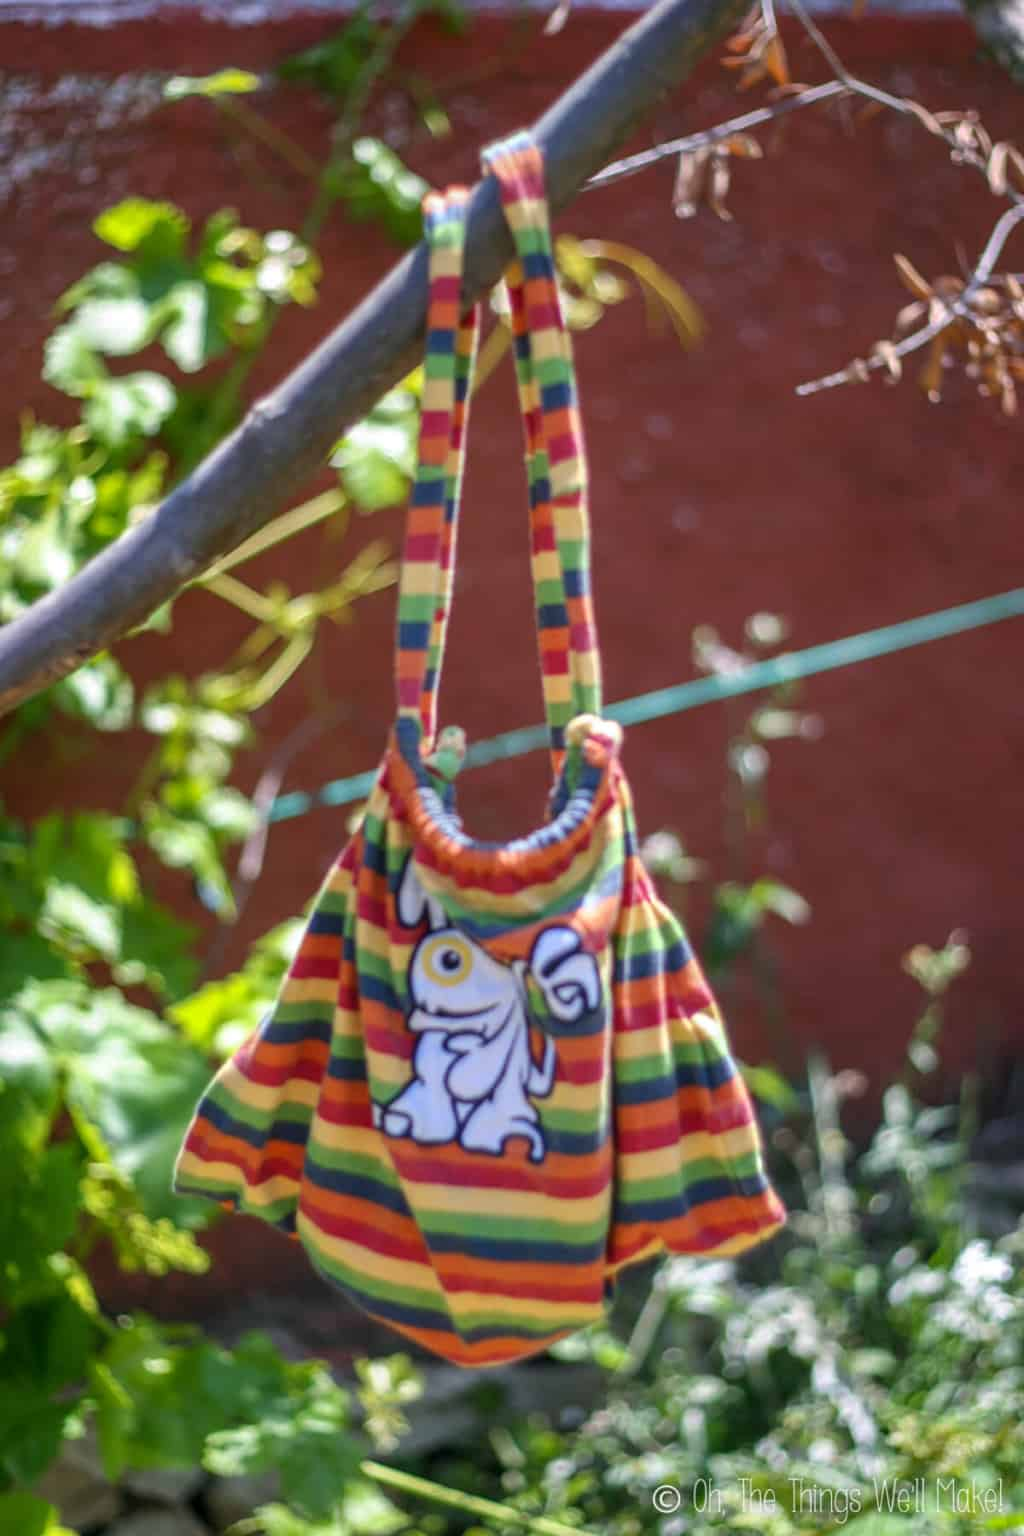 A colorful handmade drawstring backpack made from a baby t-shirt, hanging from a tree branch.